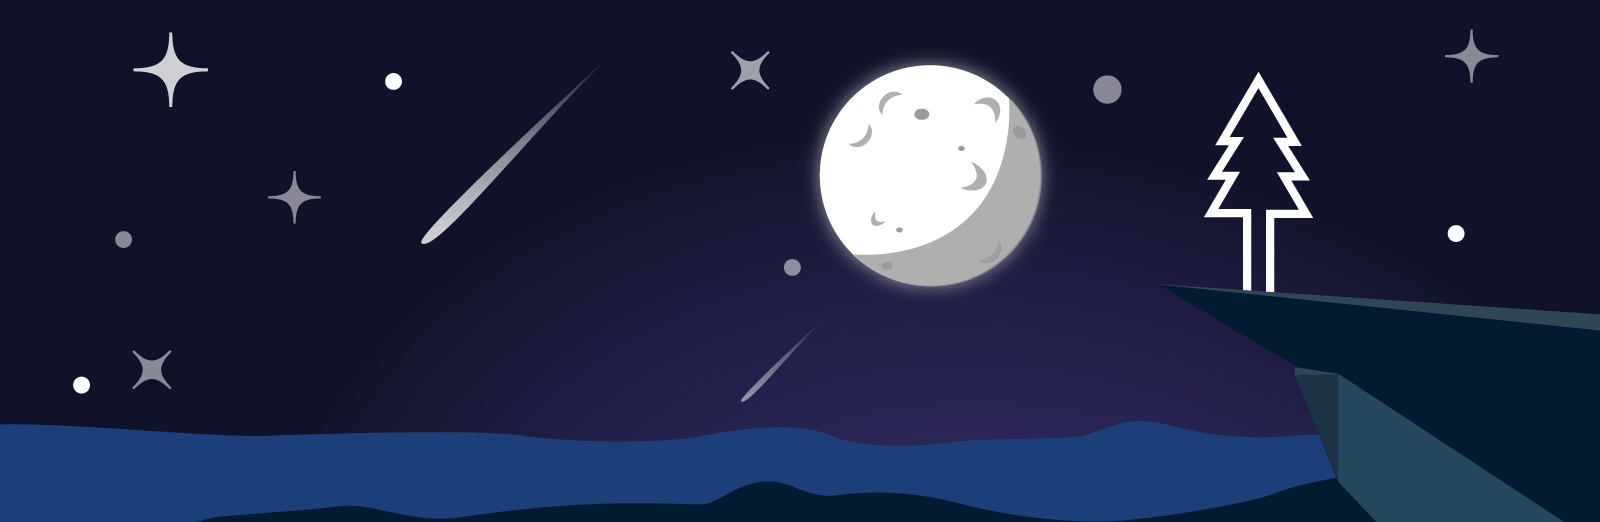 A nighttime illustration of the sky, moon and the Pine Design Studio logo.